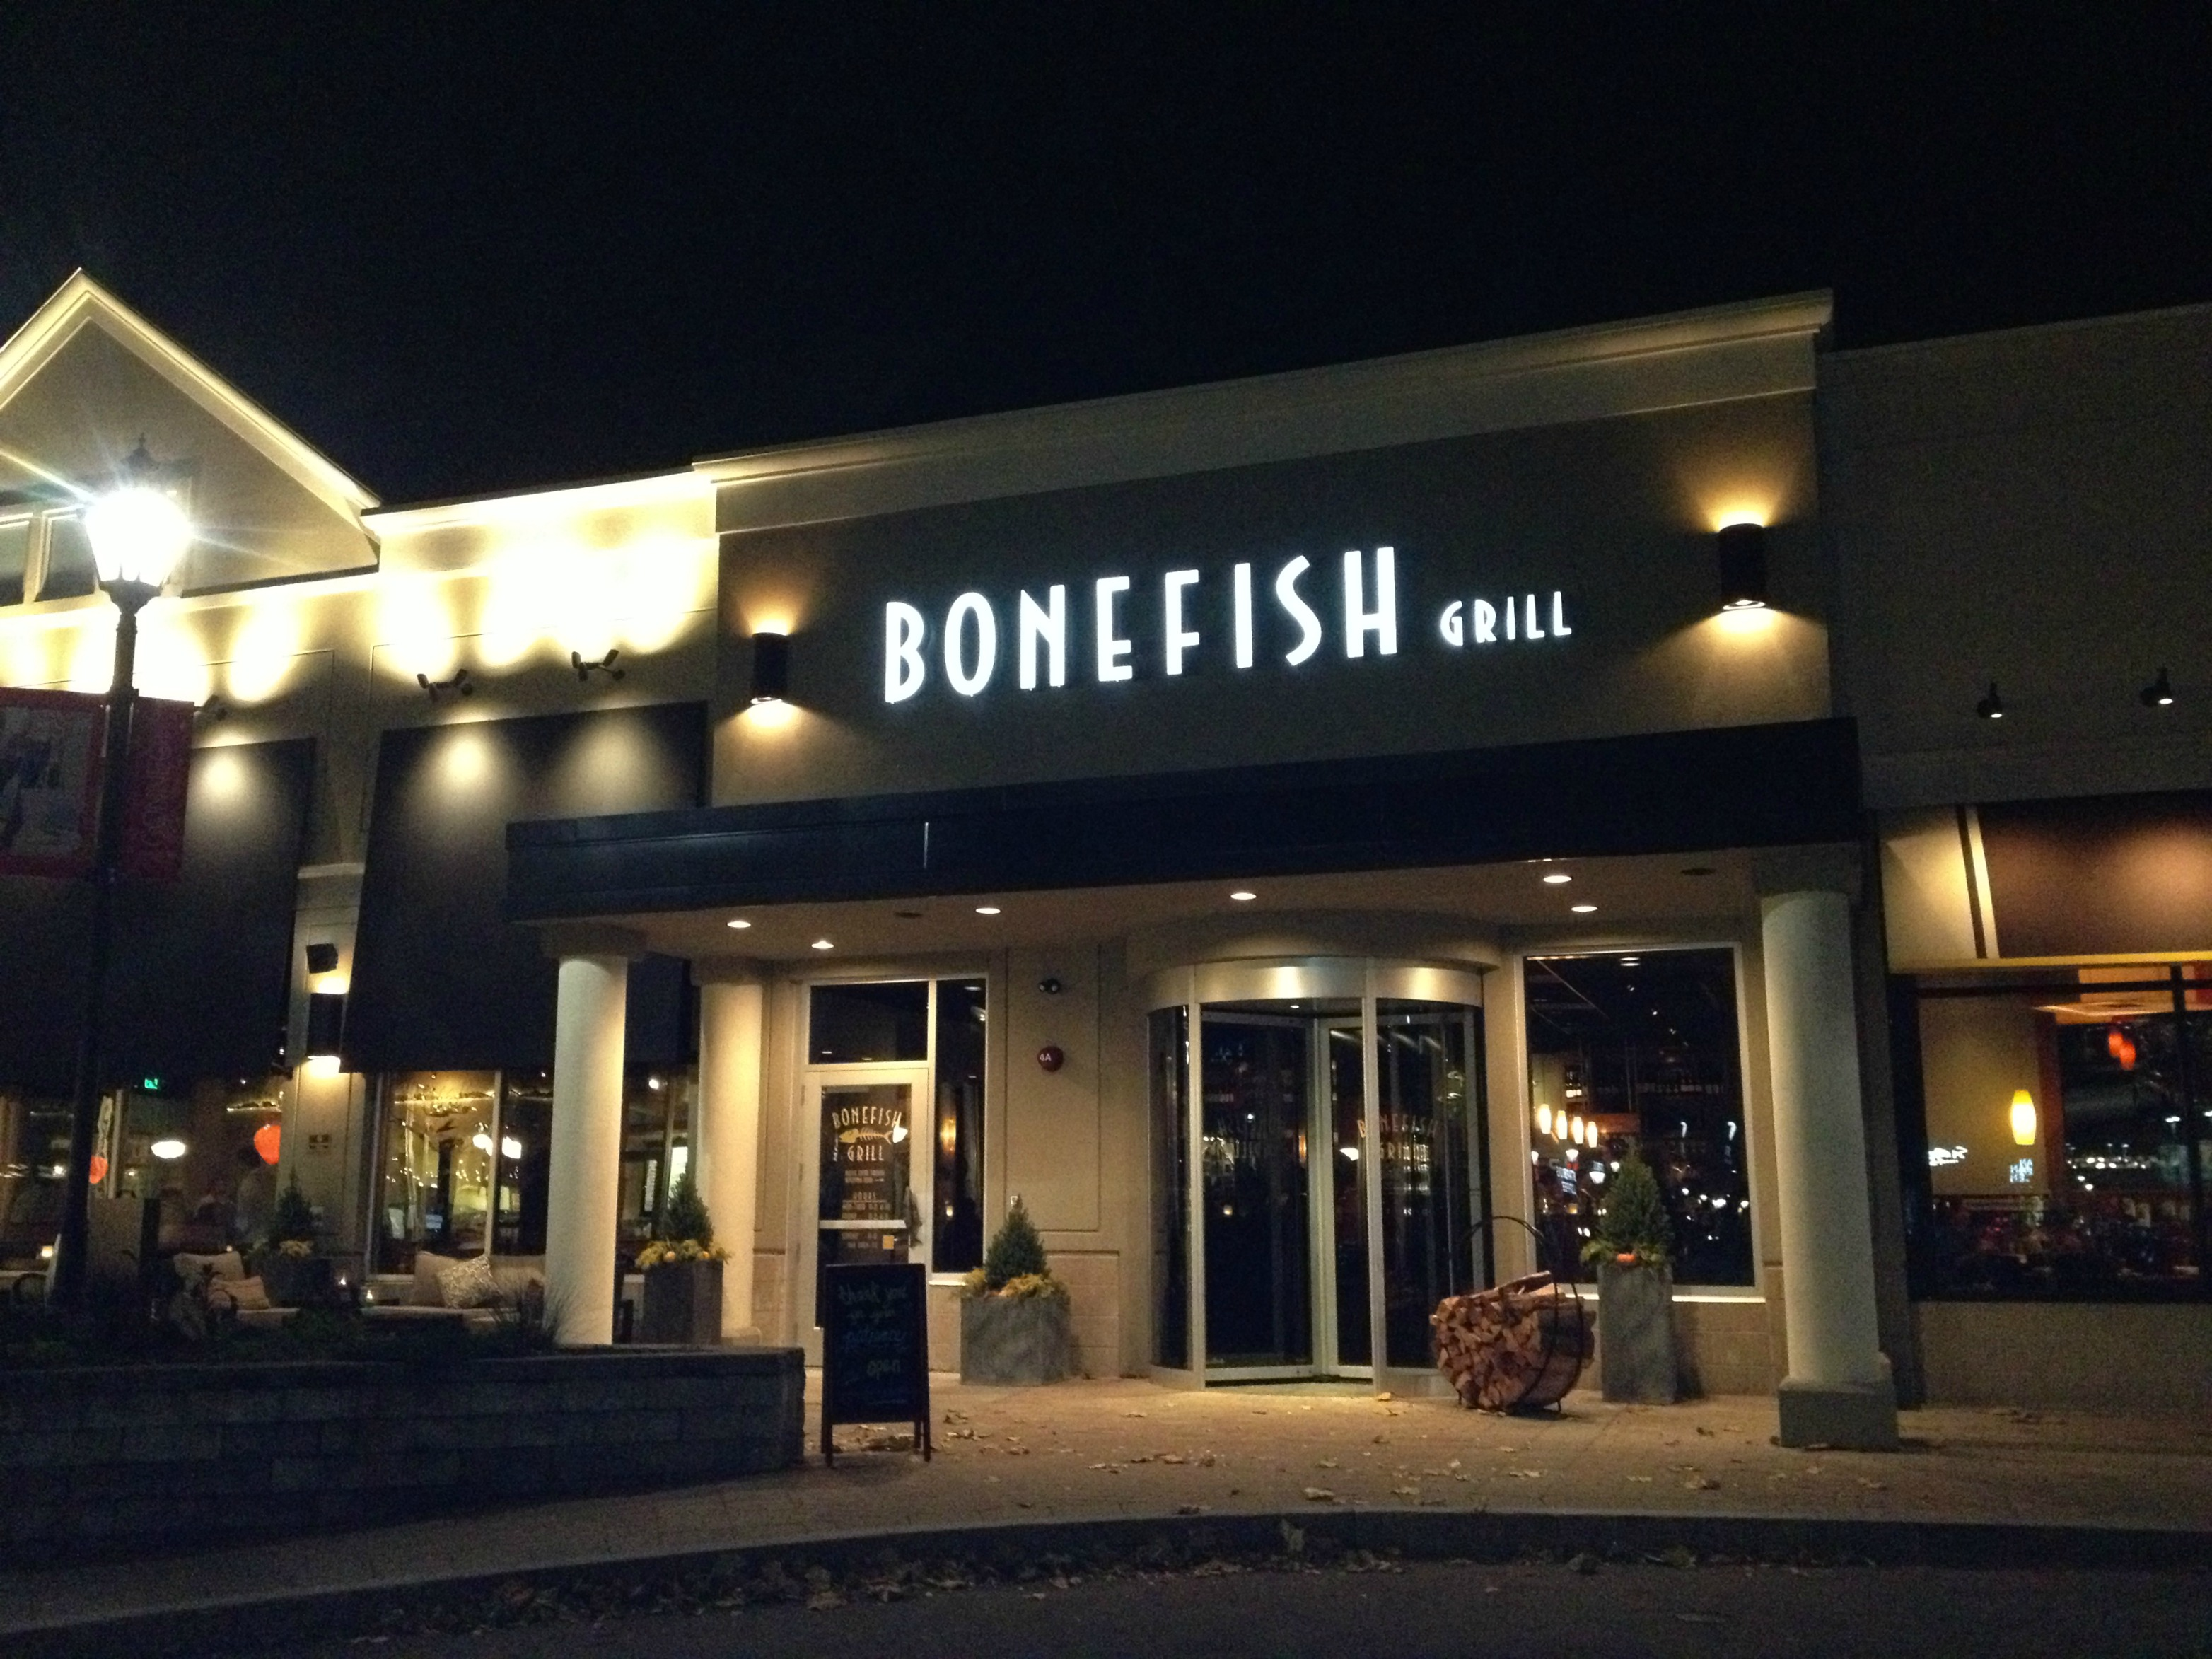 Bonefish grill the 10 best chain restaurants for a date for Bone fish and grill